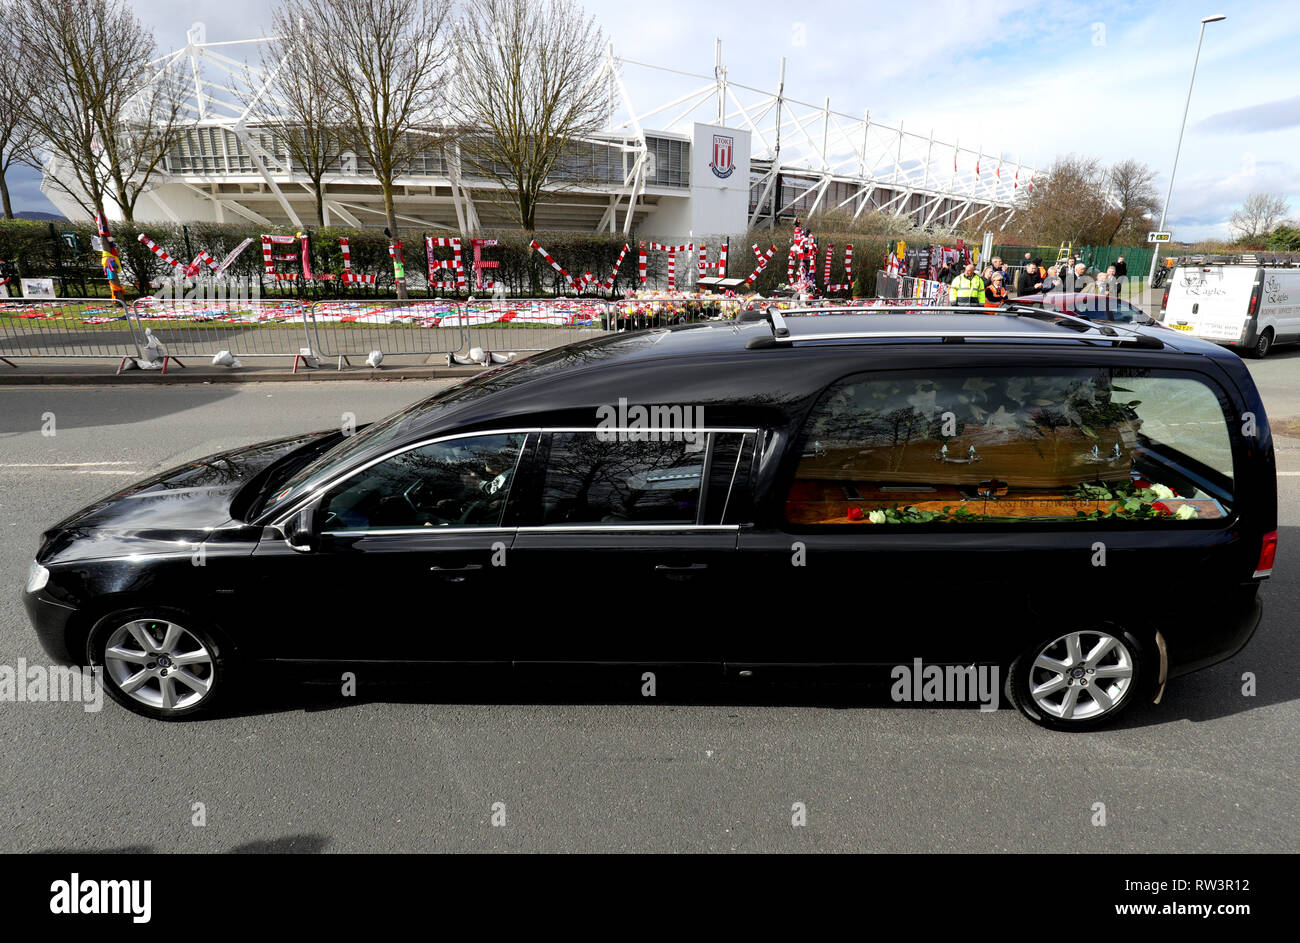 The Gordon Banks funeral cortege passes by tributes from fans at the bet365 Stadium, Stoke. Stock Photo